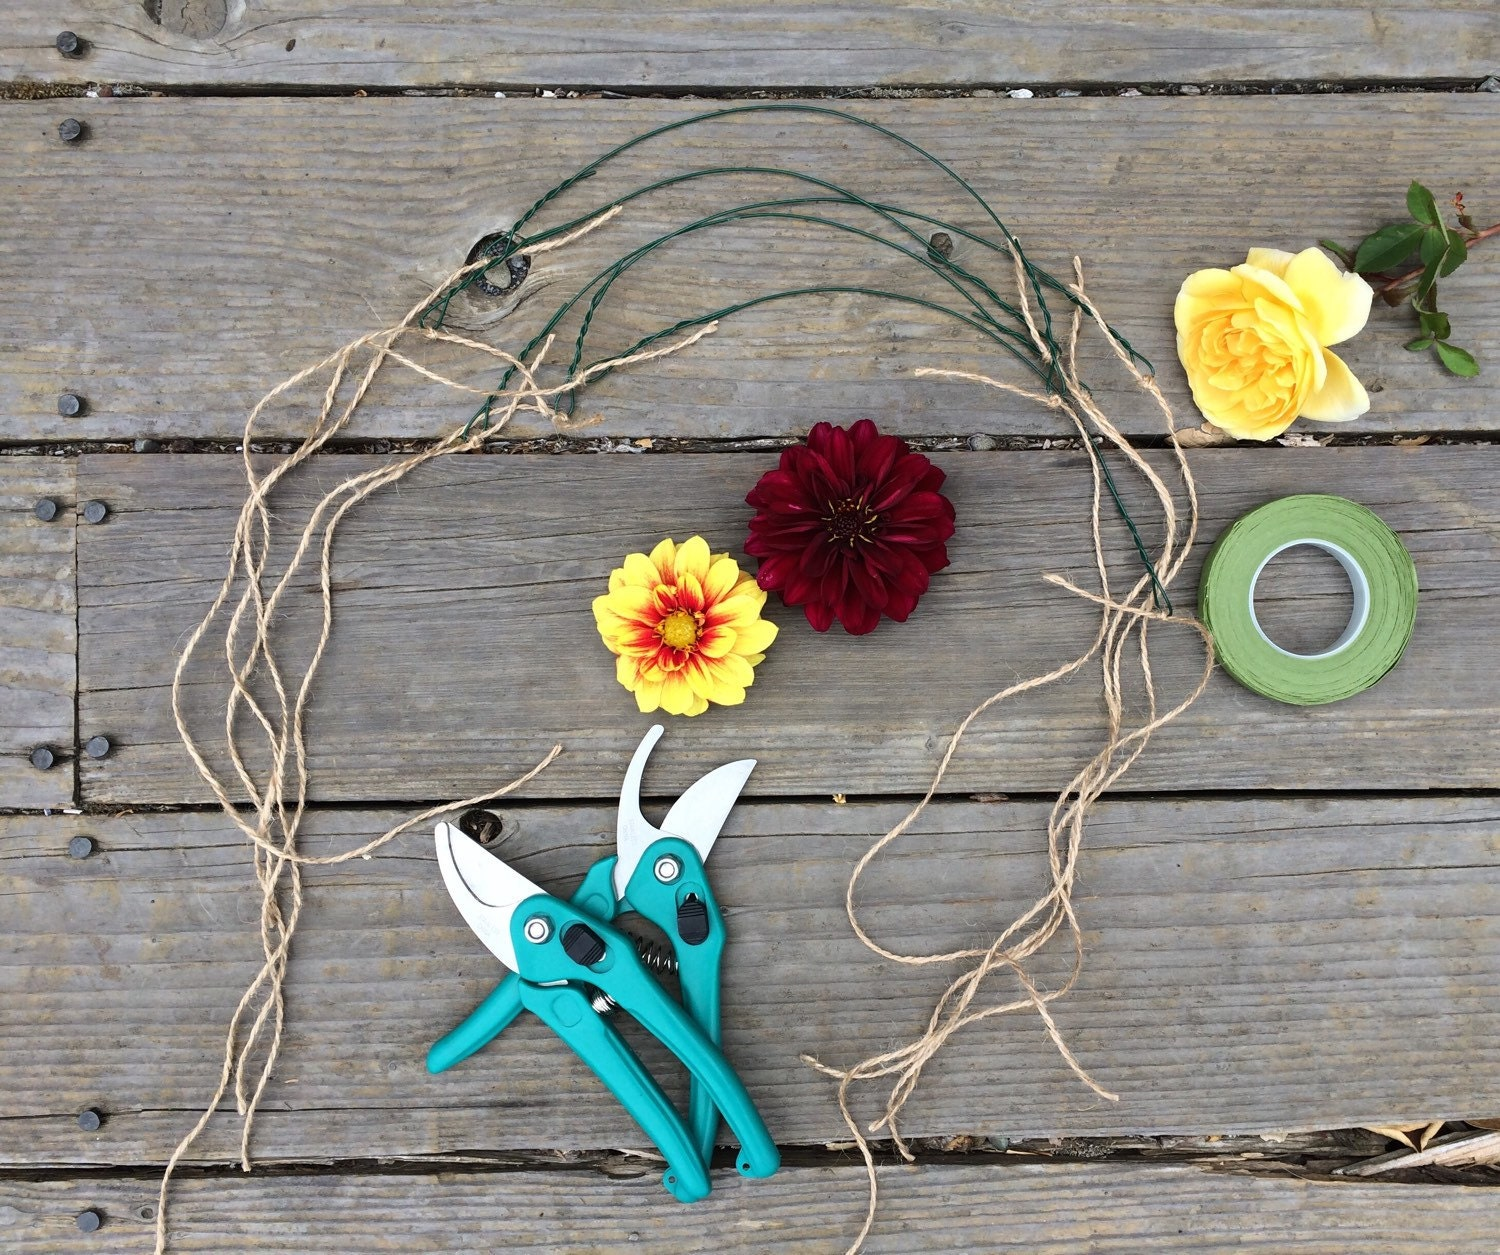 Flower Crown Kit DIY Just Add Fresh Flowers